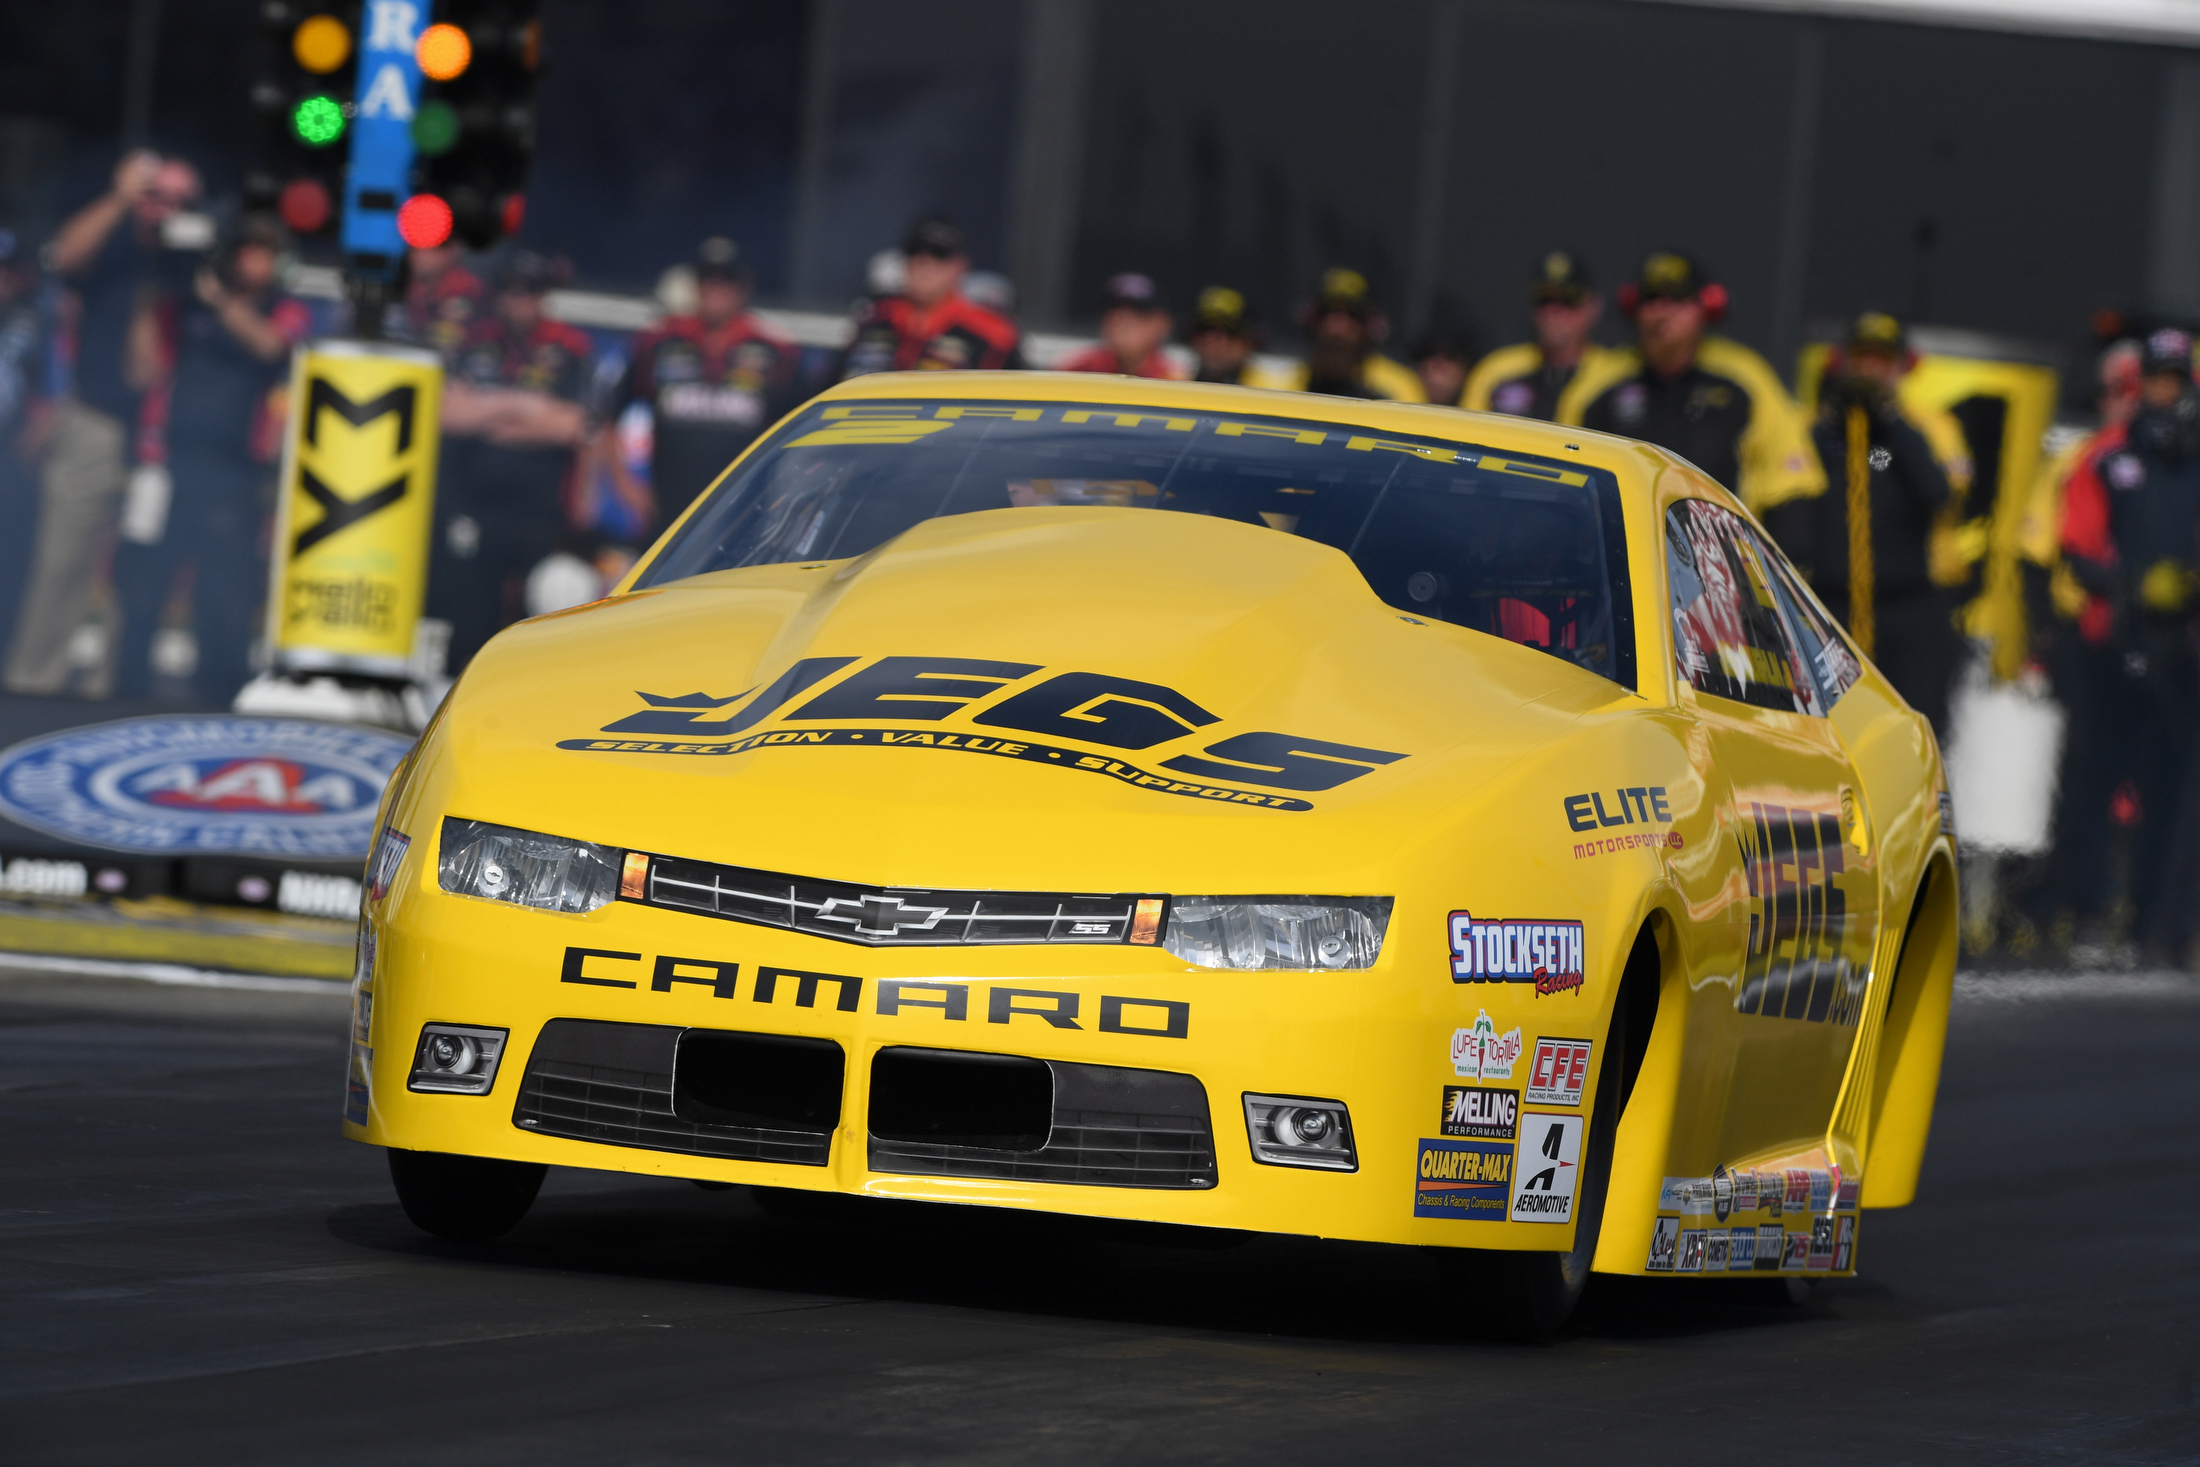 JEGS/Elite Performance Pro Stock driver Jeg Coughlin Jr. racing on Friday at the Auto Club NHRA Finals